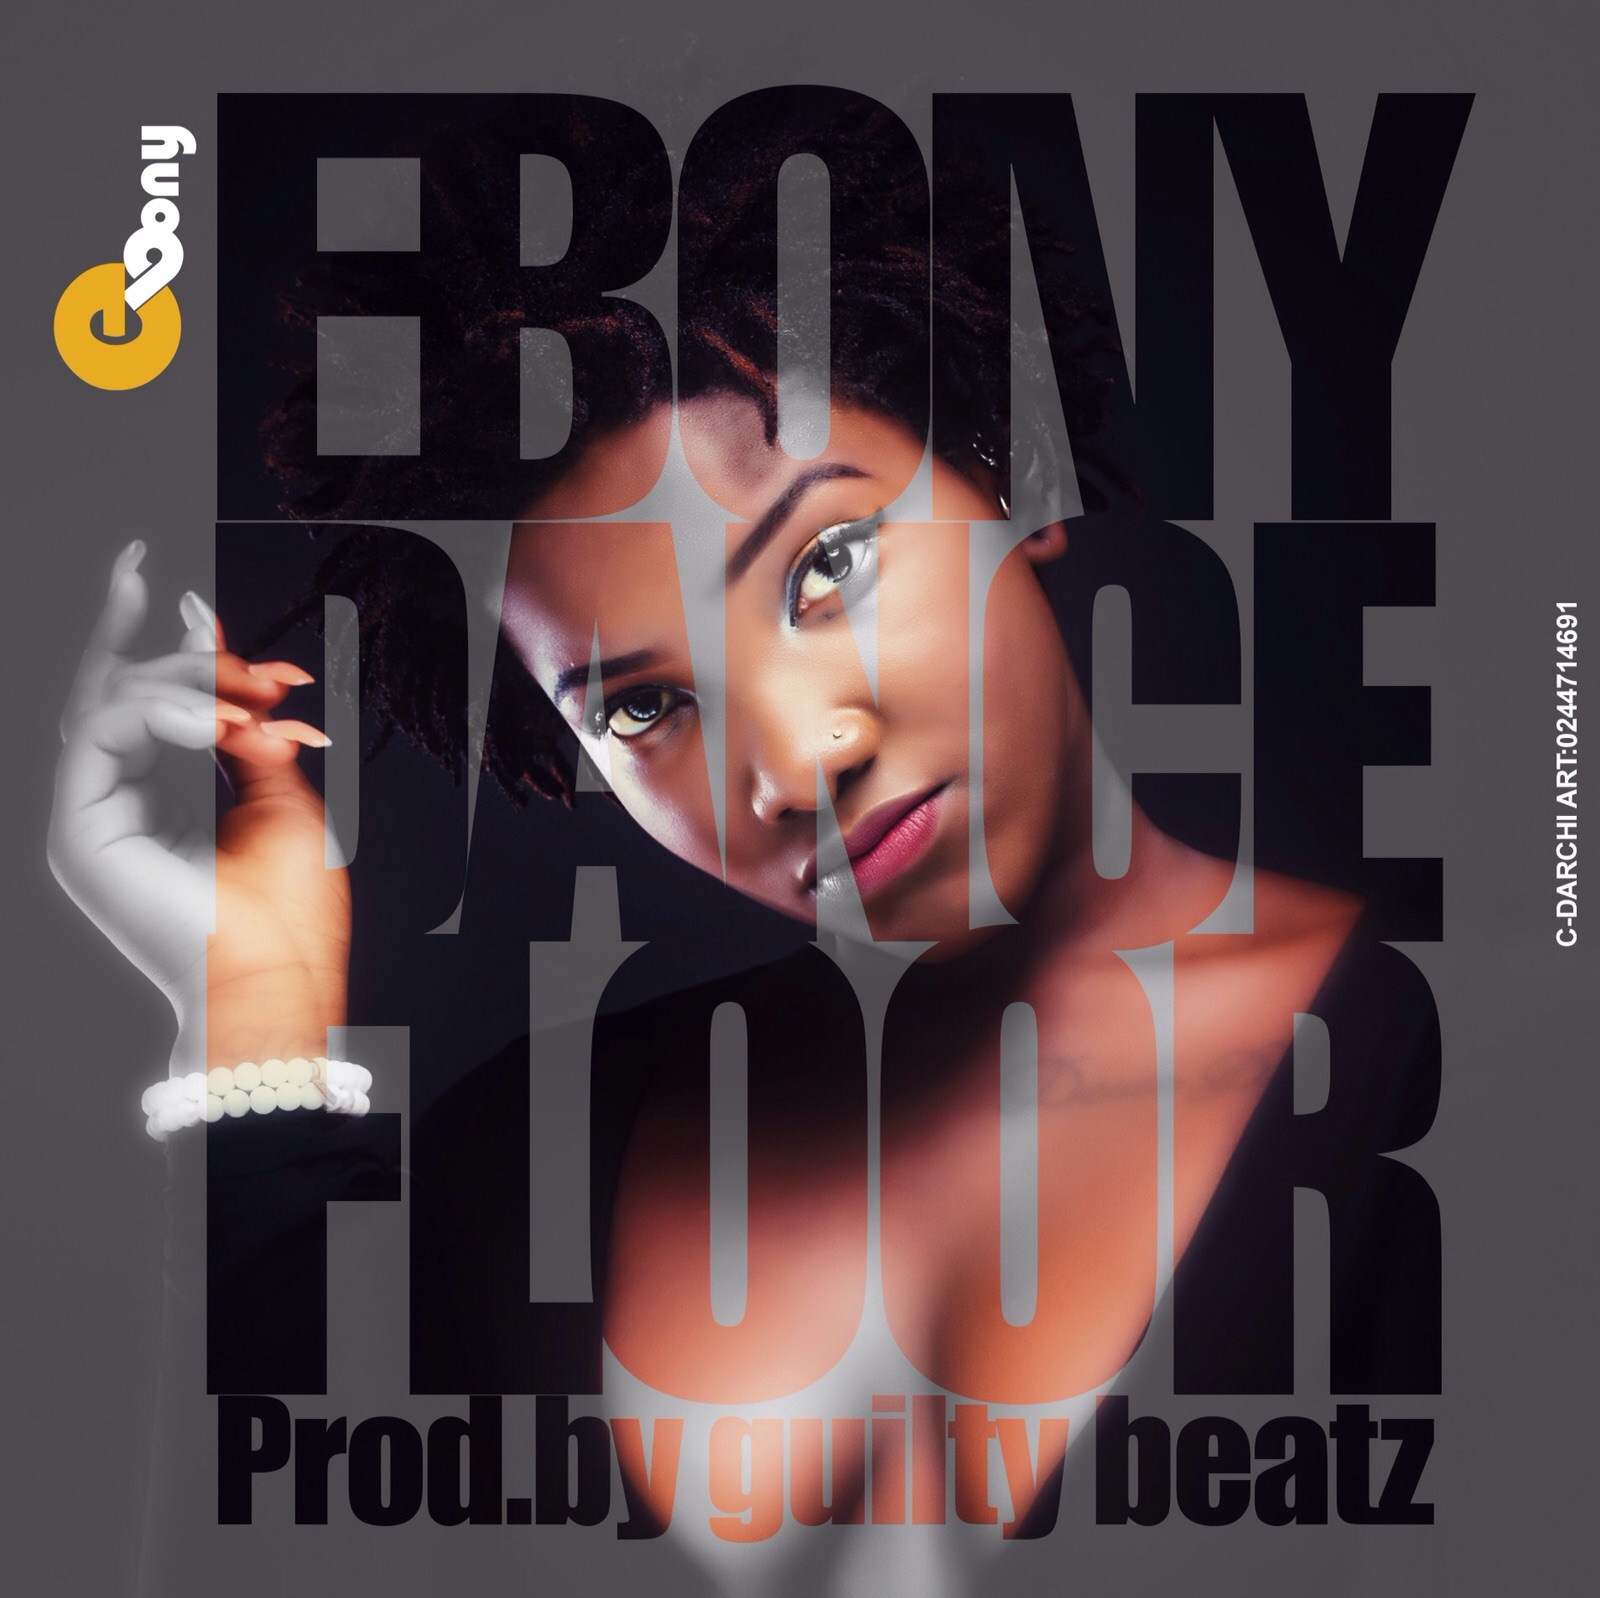 Turn on the light by ebony